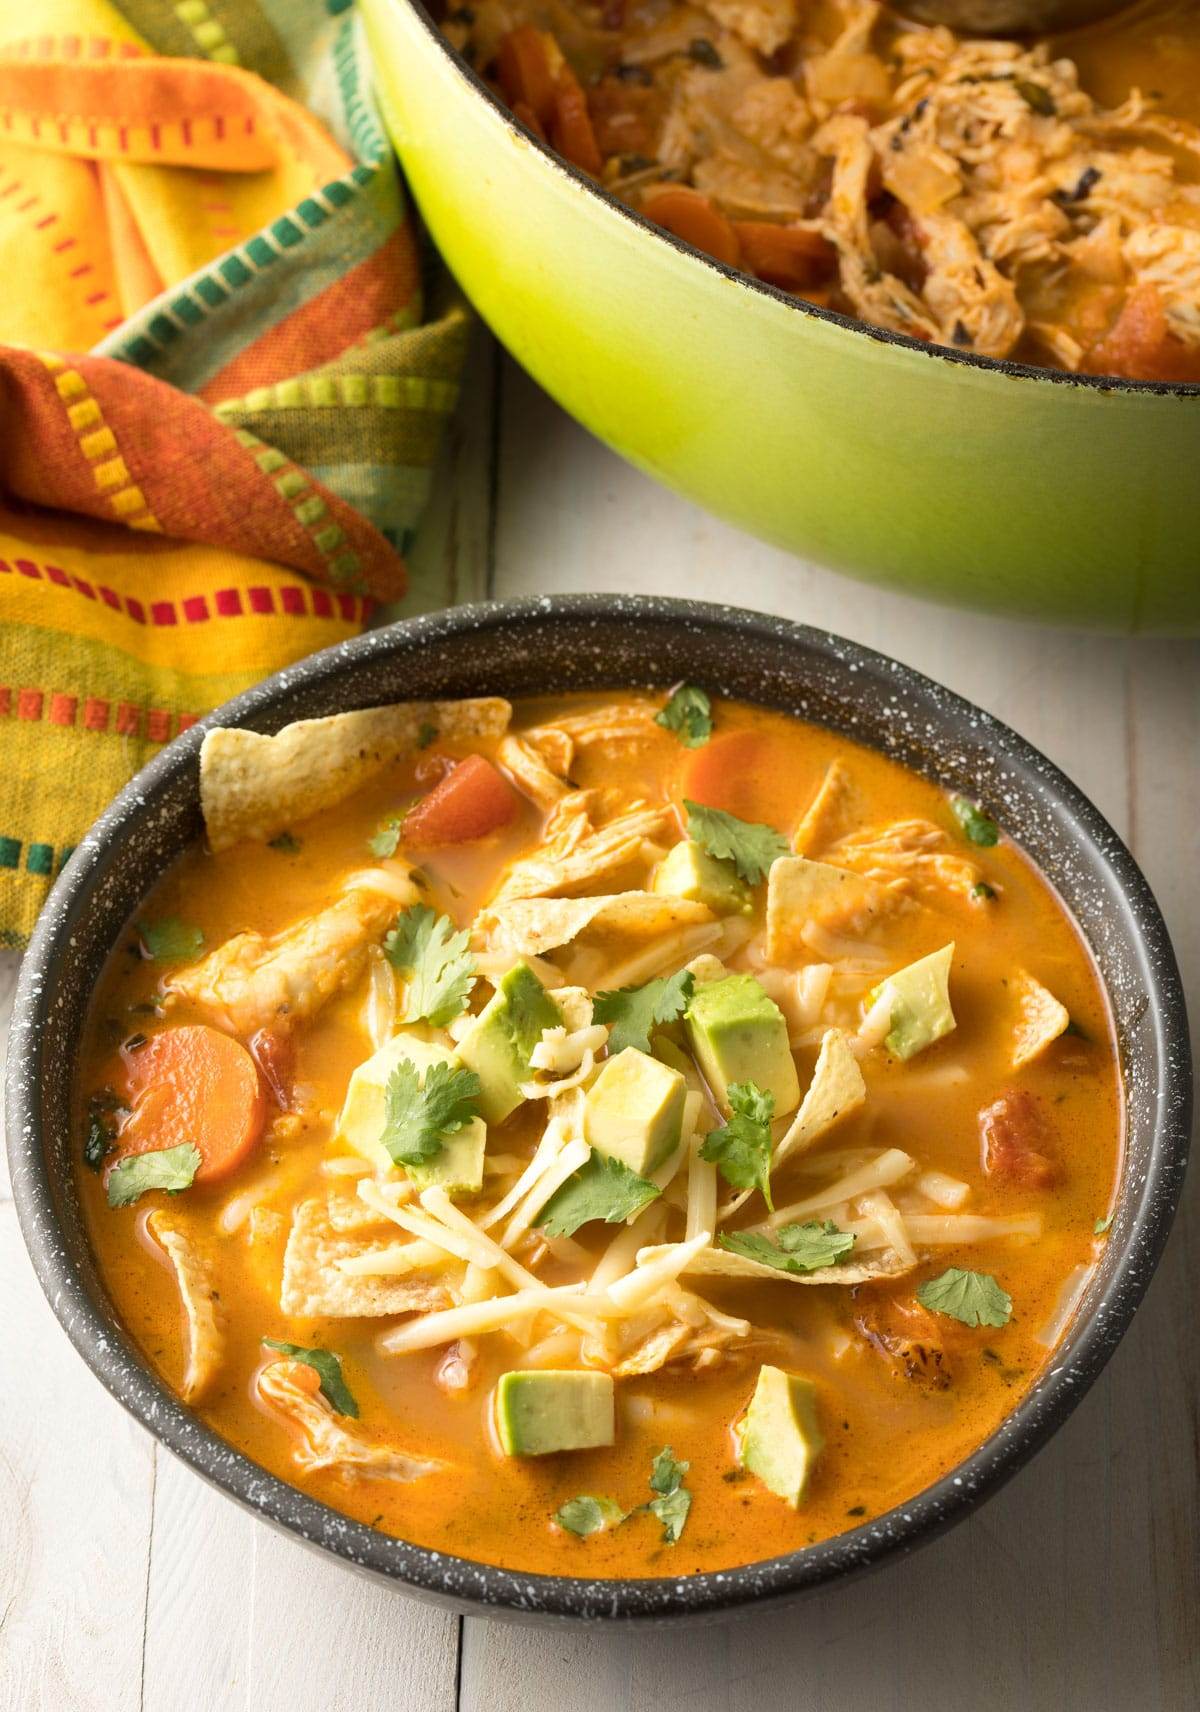 Best Chicken Tortilla Soup Recipe #ASpicyPerspective #instantpot #slowcooker